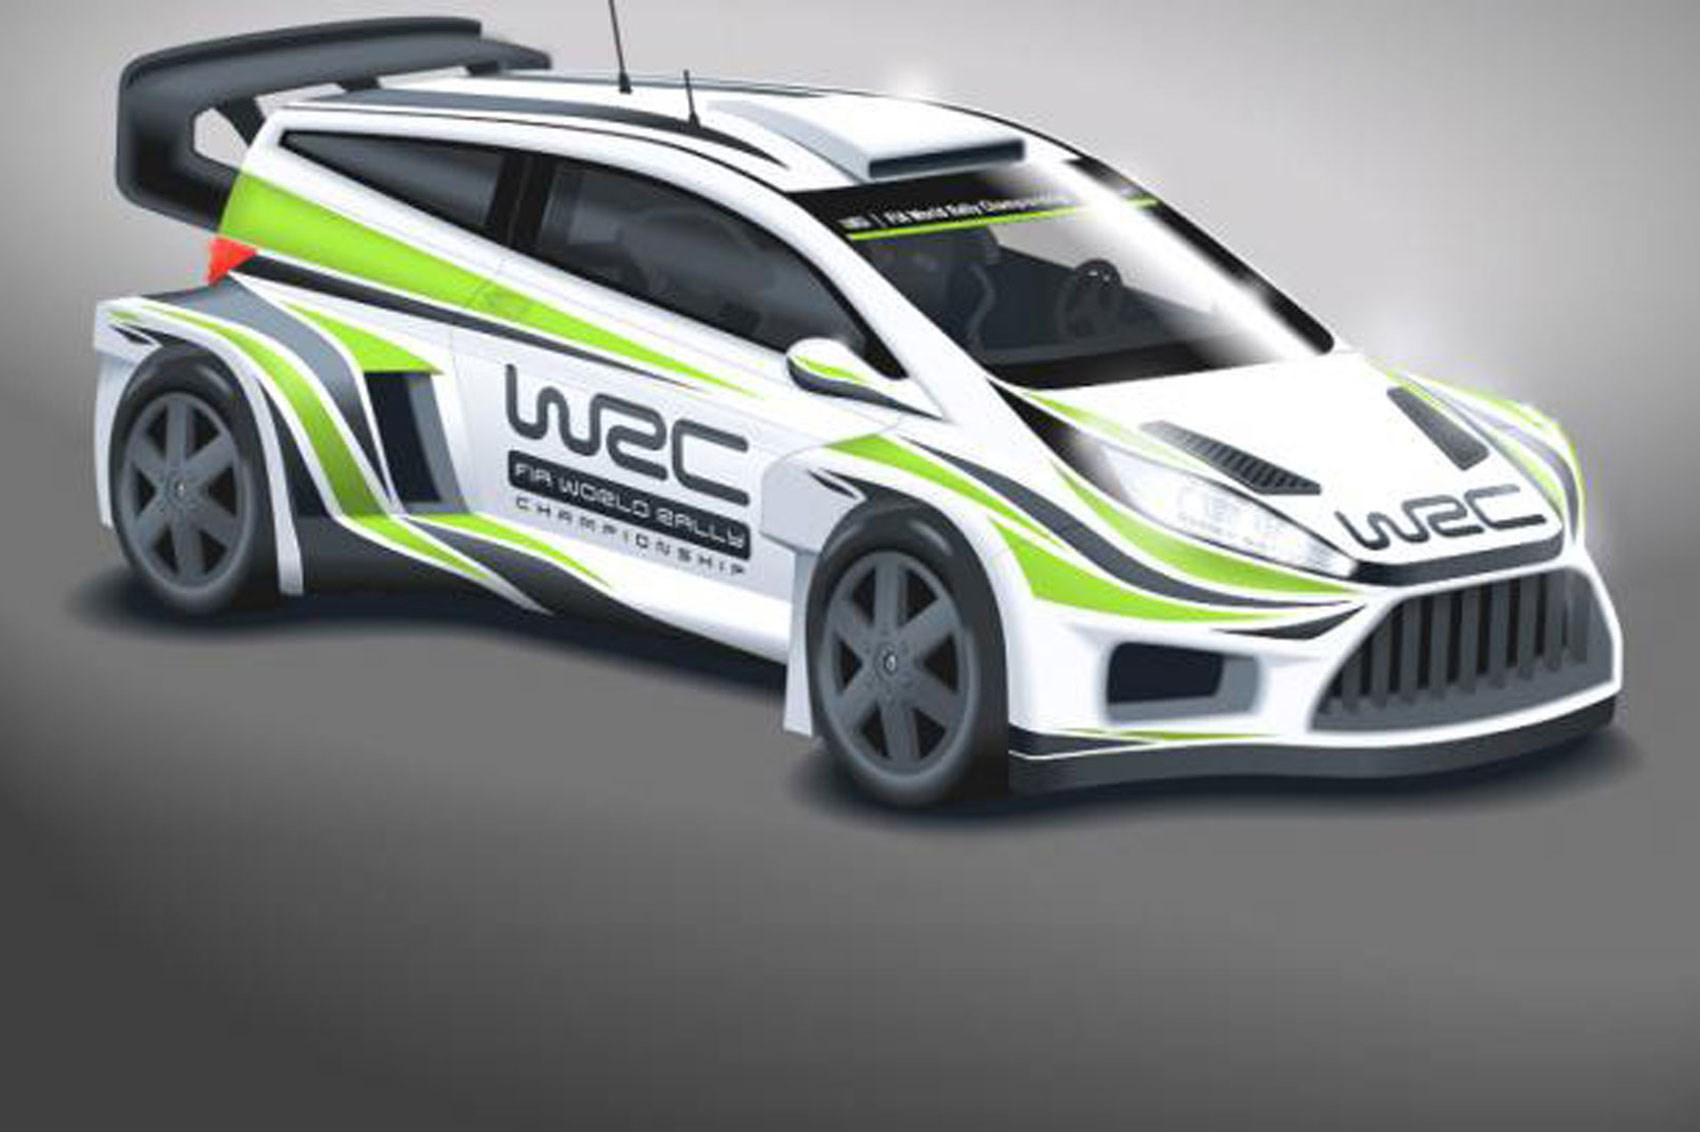 Ultrablogus  Pleasant Wild New Look For Wrc Cars In  By Car Magazine With Fetching Wrc Cars Will Get Wider Bodies Bigger Wings And More Power For  With Amazing Futuristic Interiors Also Eclipse  Interior In Addition Whats Interior And Minimalist Interiors As Well As Tu Interior Additionally S Interior Mods From Carmagazinecouk With Ultrablogus  Fetching Wild New Look For Wrc Cars In  By Car Magazine With Amazing Wrc Cars Will Get Wider Bodies Bigger Wings And More Power For  And Pleasant Futuristic Interiors Also Eclipse  Interior In Addition Whats Interior From Carmagazinecouk